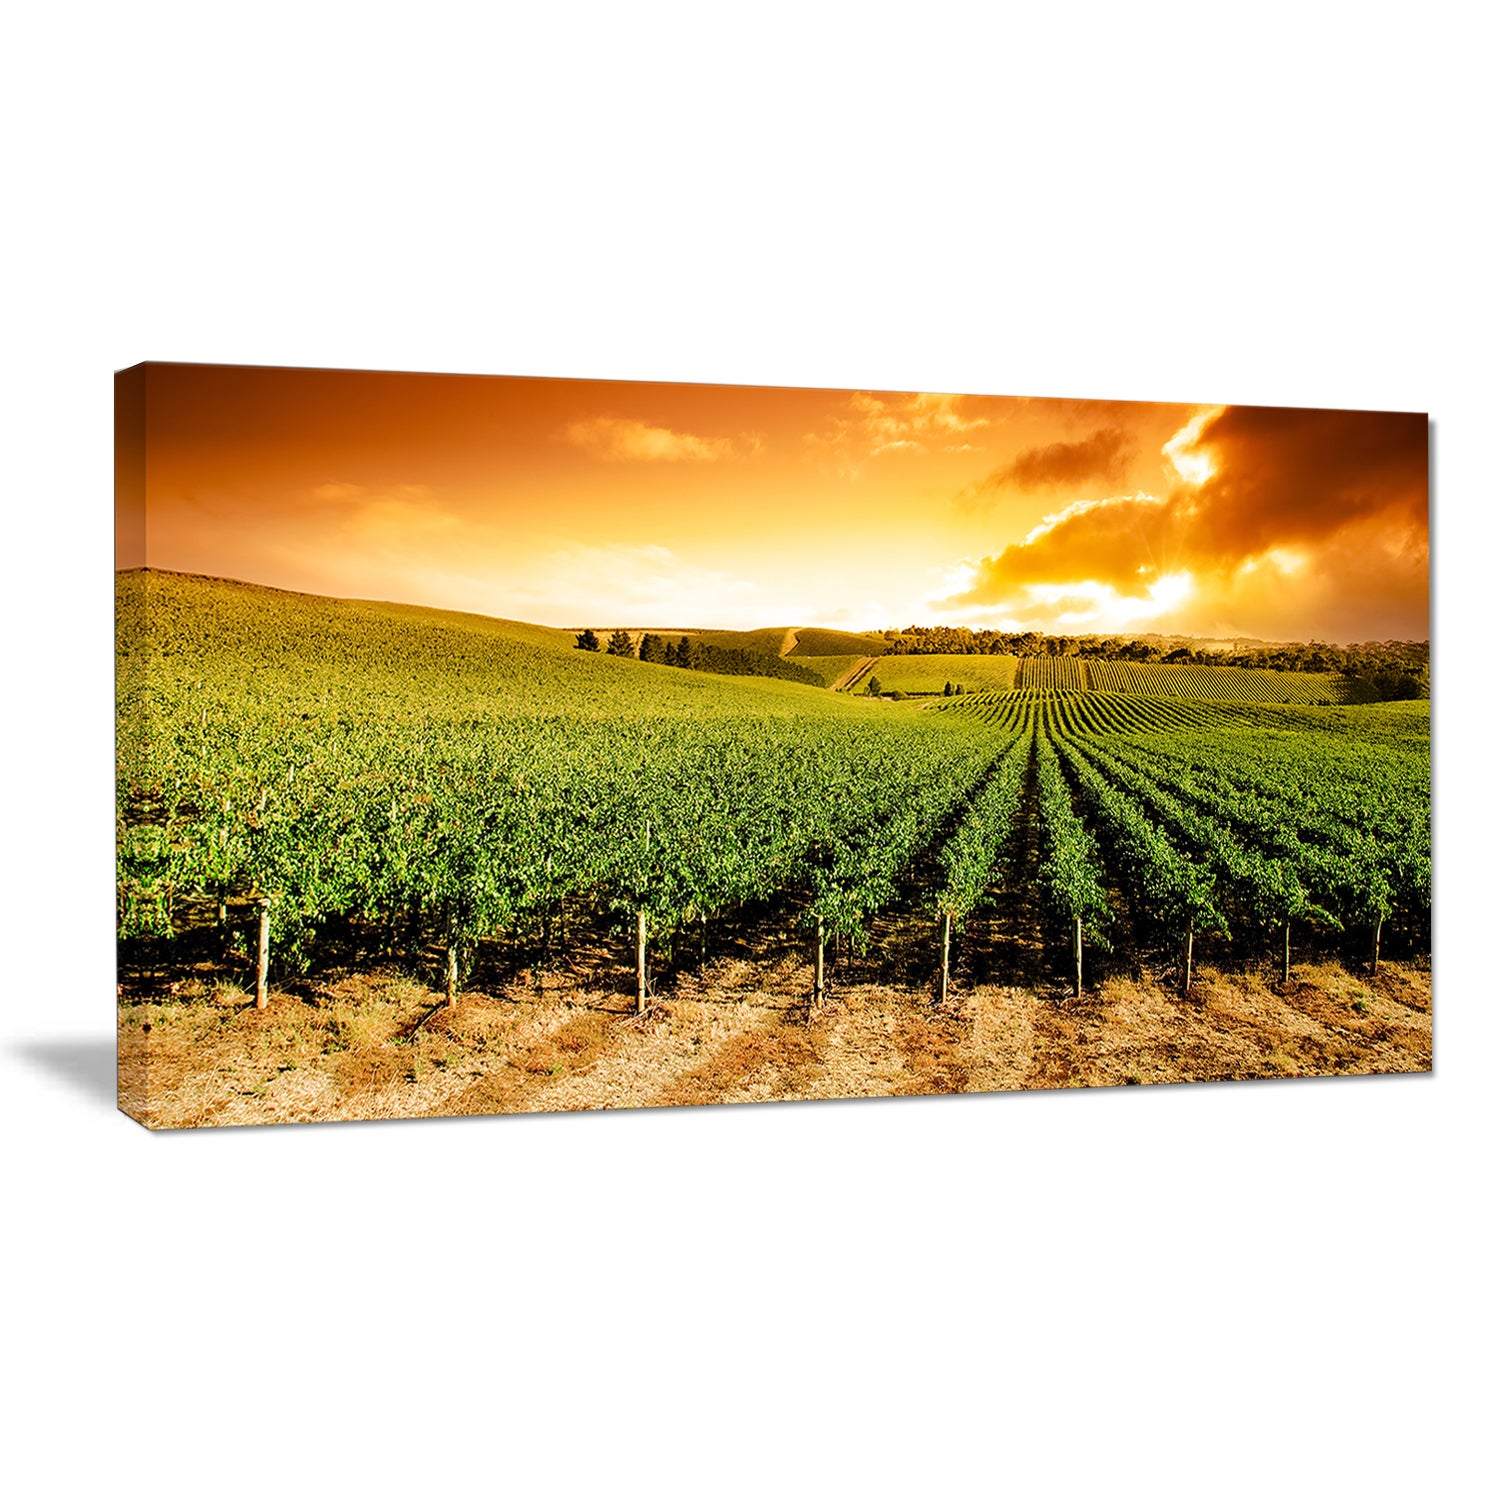 Shop Sunset Vineyard Panorama - Extra Large Wall Art Landscape ...